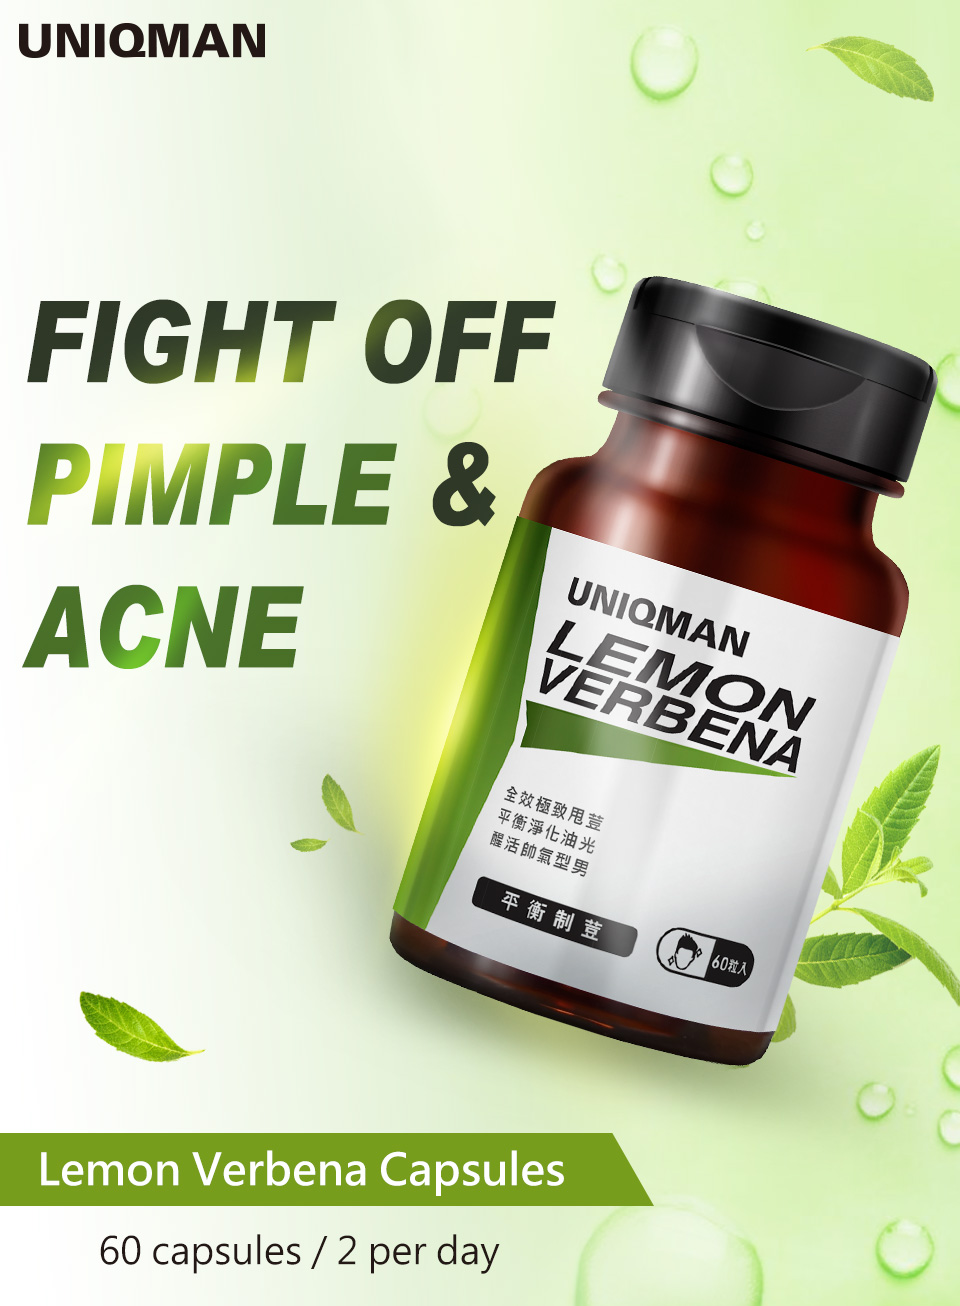 UNIQMAN LemonVerbena helps to get rid of ache and pimples problem